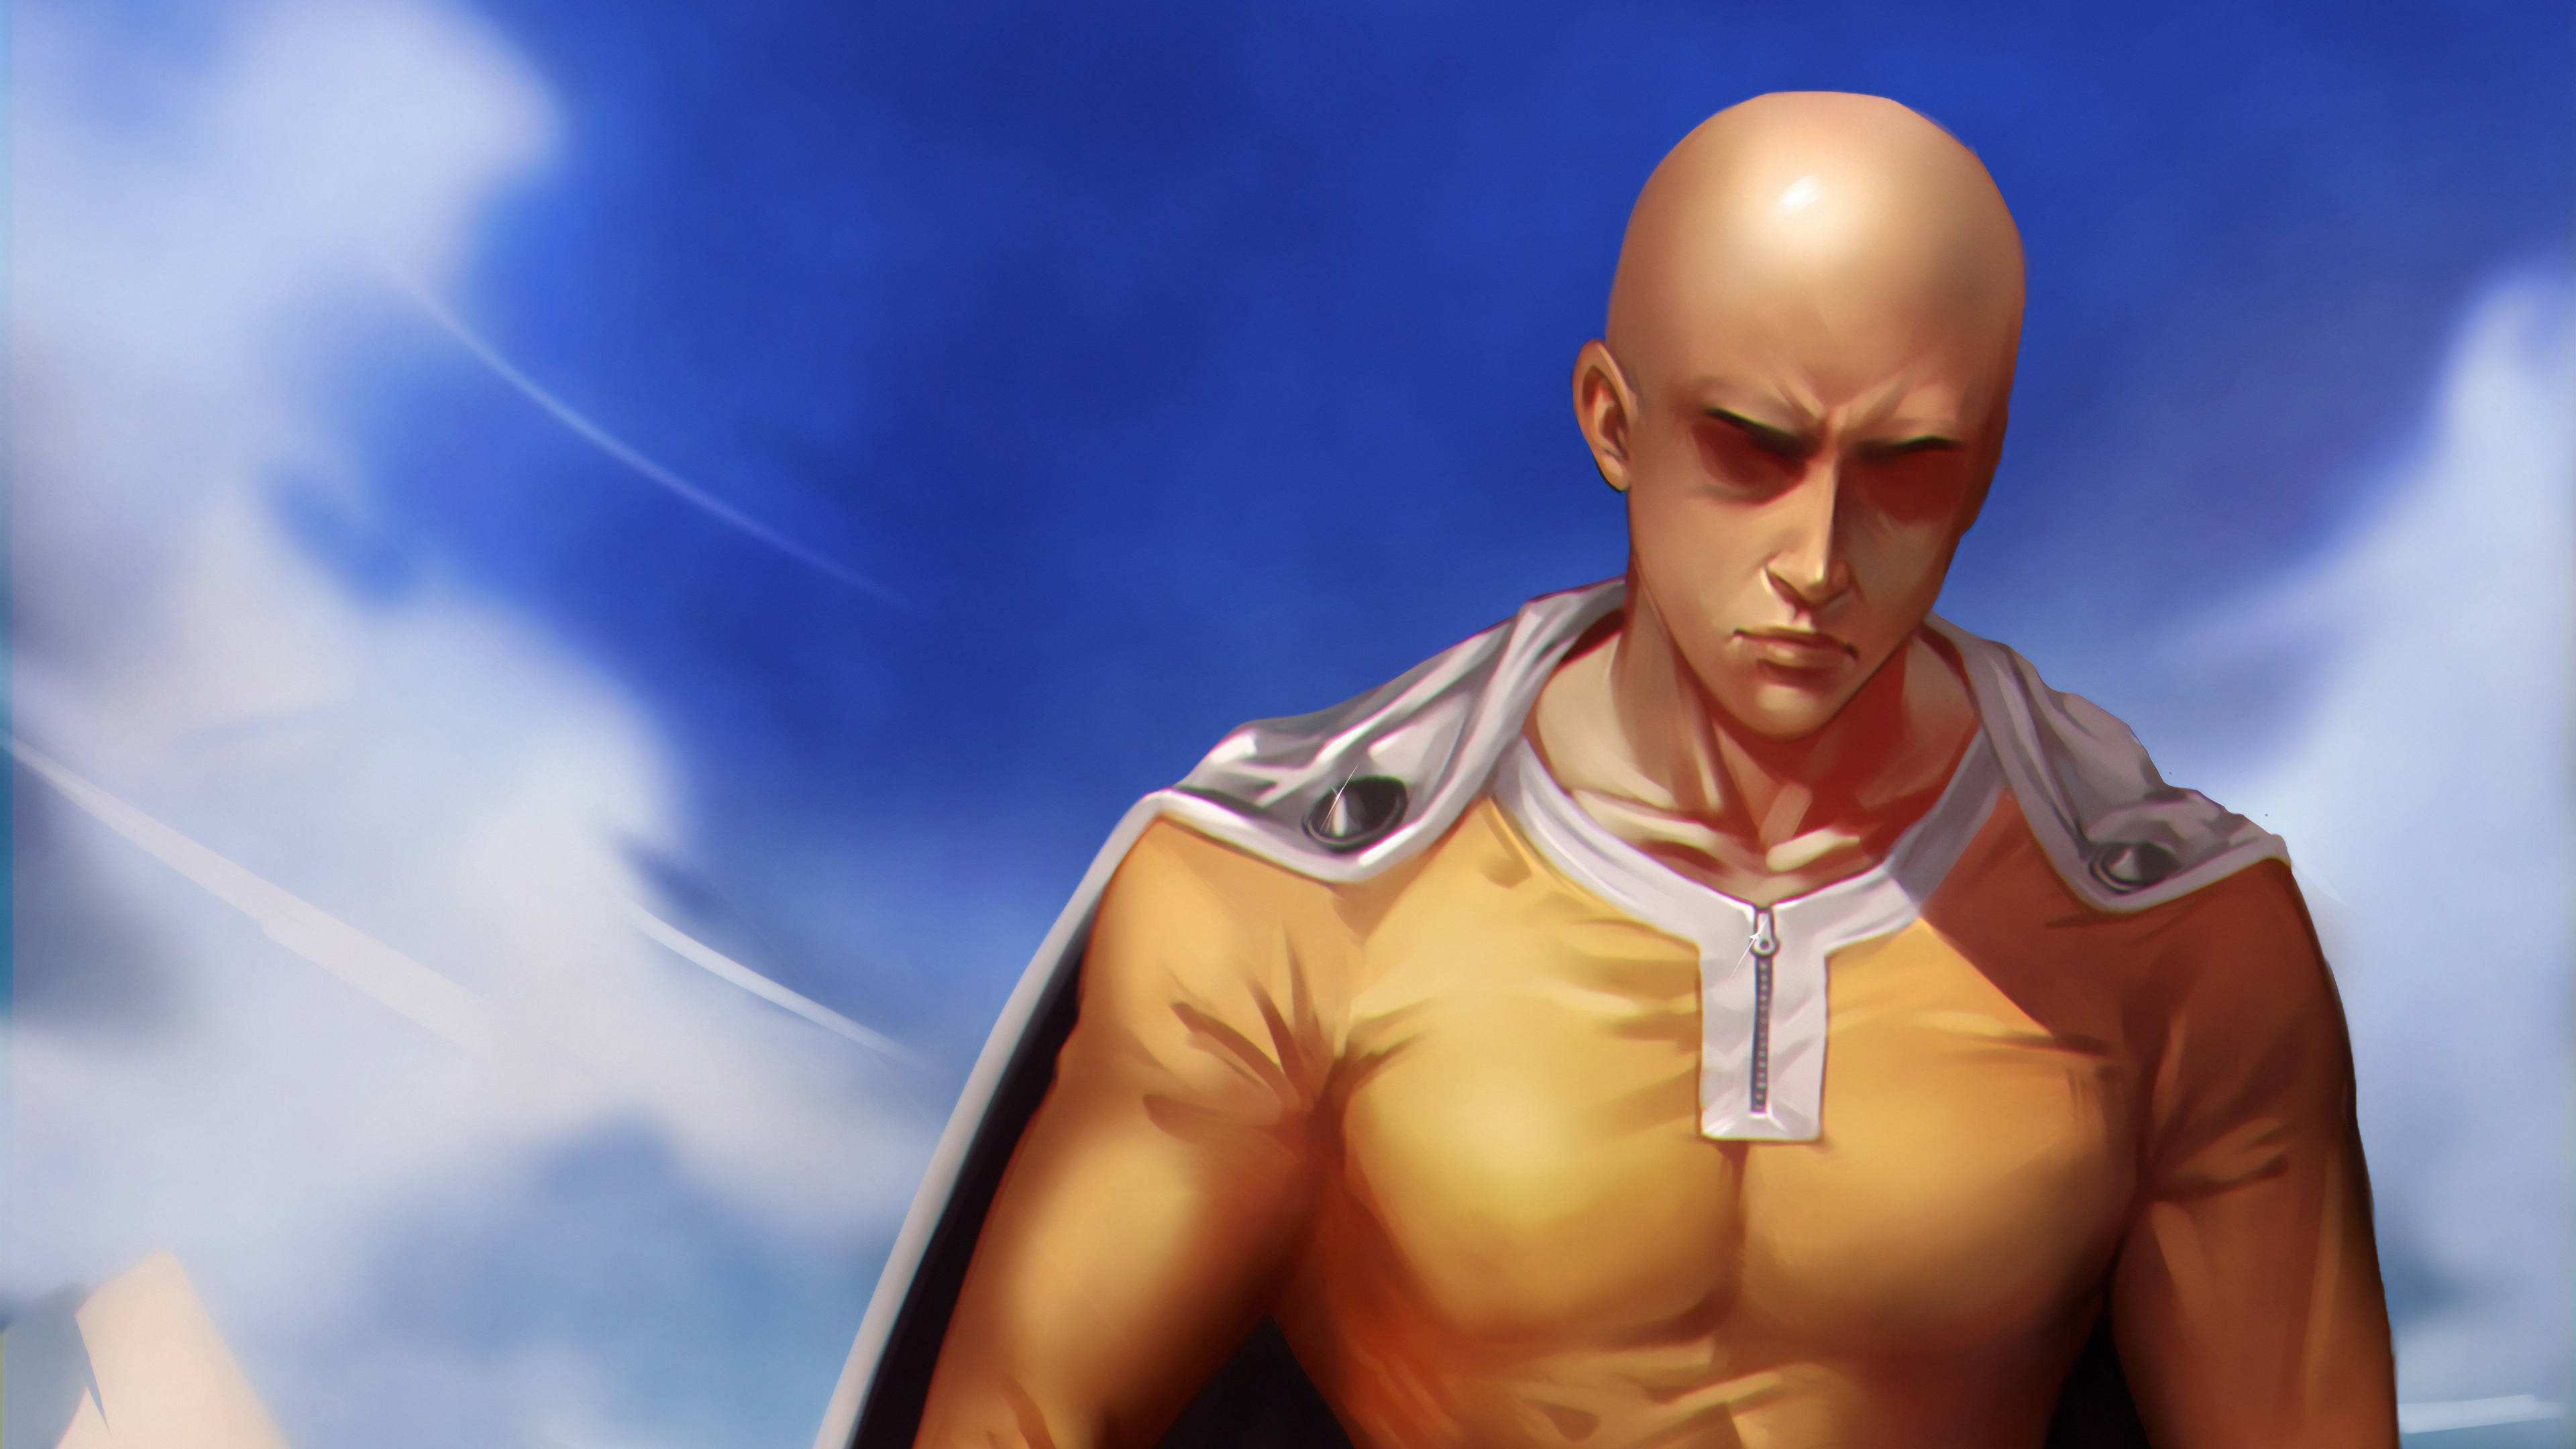 One Punch Man Art 4k Hd Anime 4k Wallpapers Images